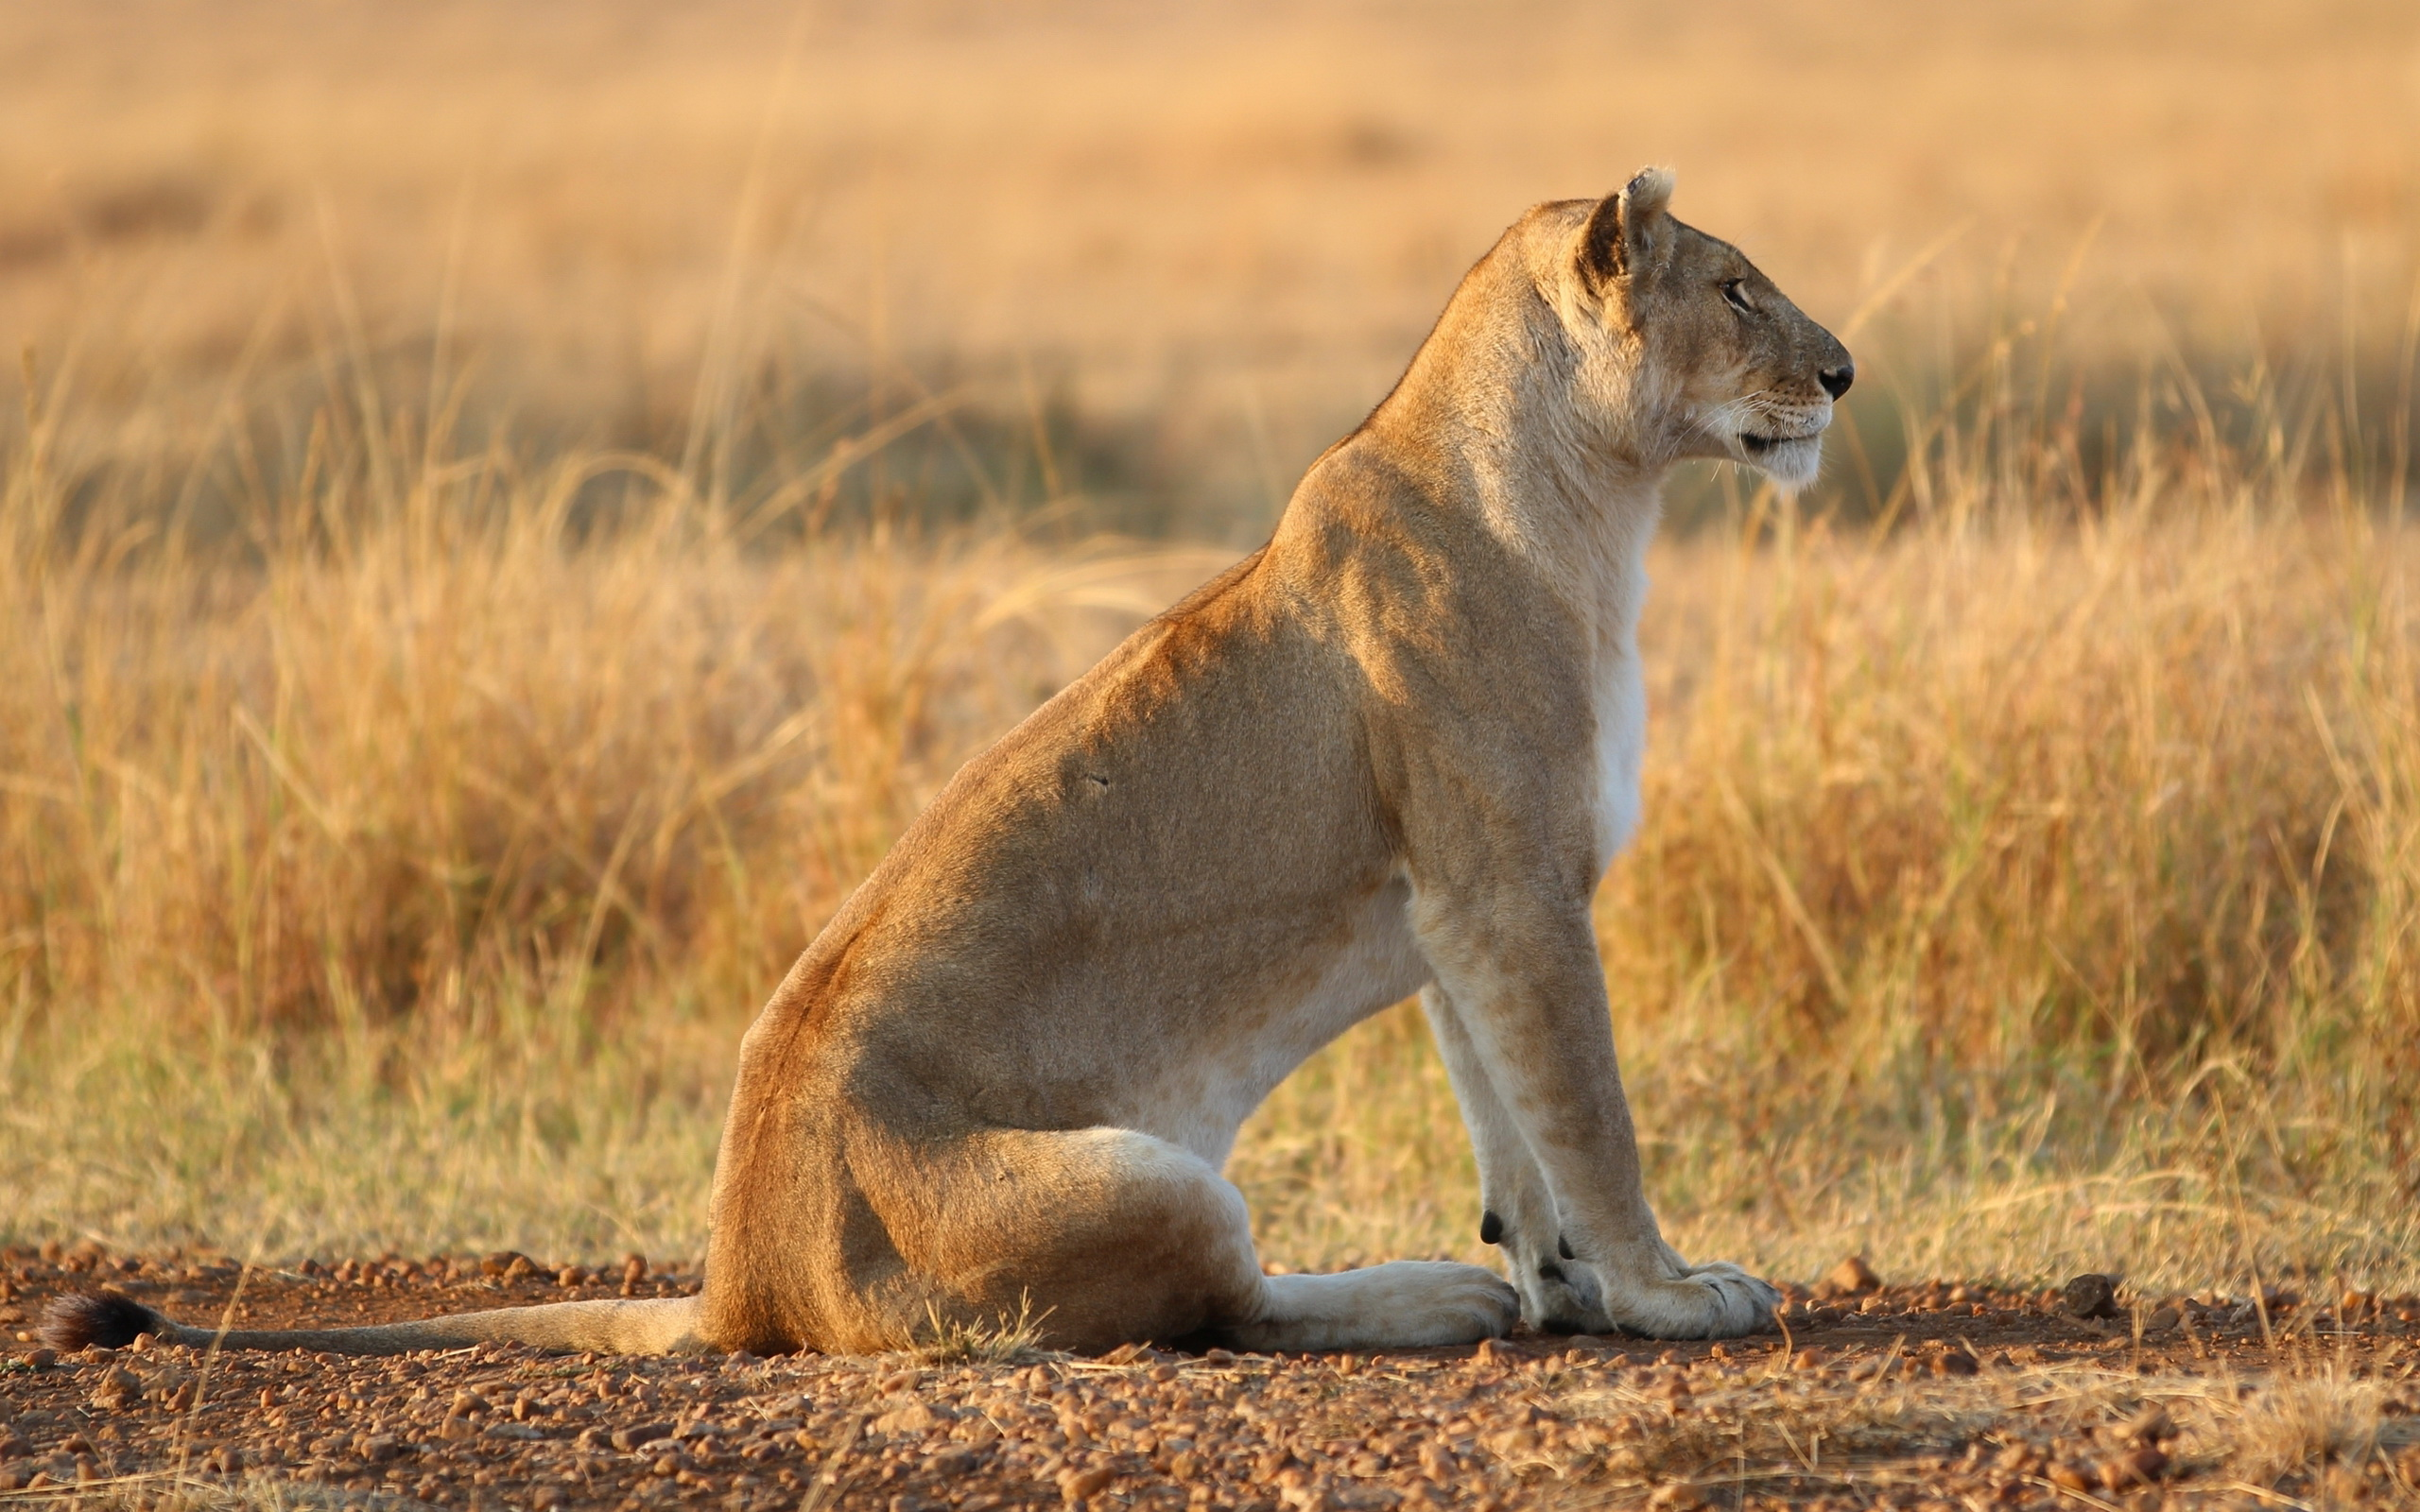 Lioness On Yellow Grass wallpapers | Lioness On Yellow ...